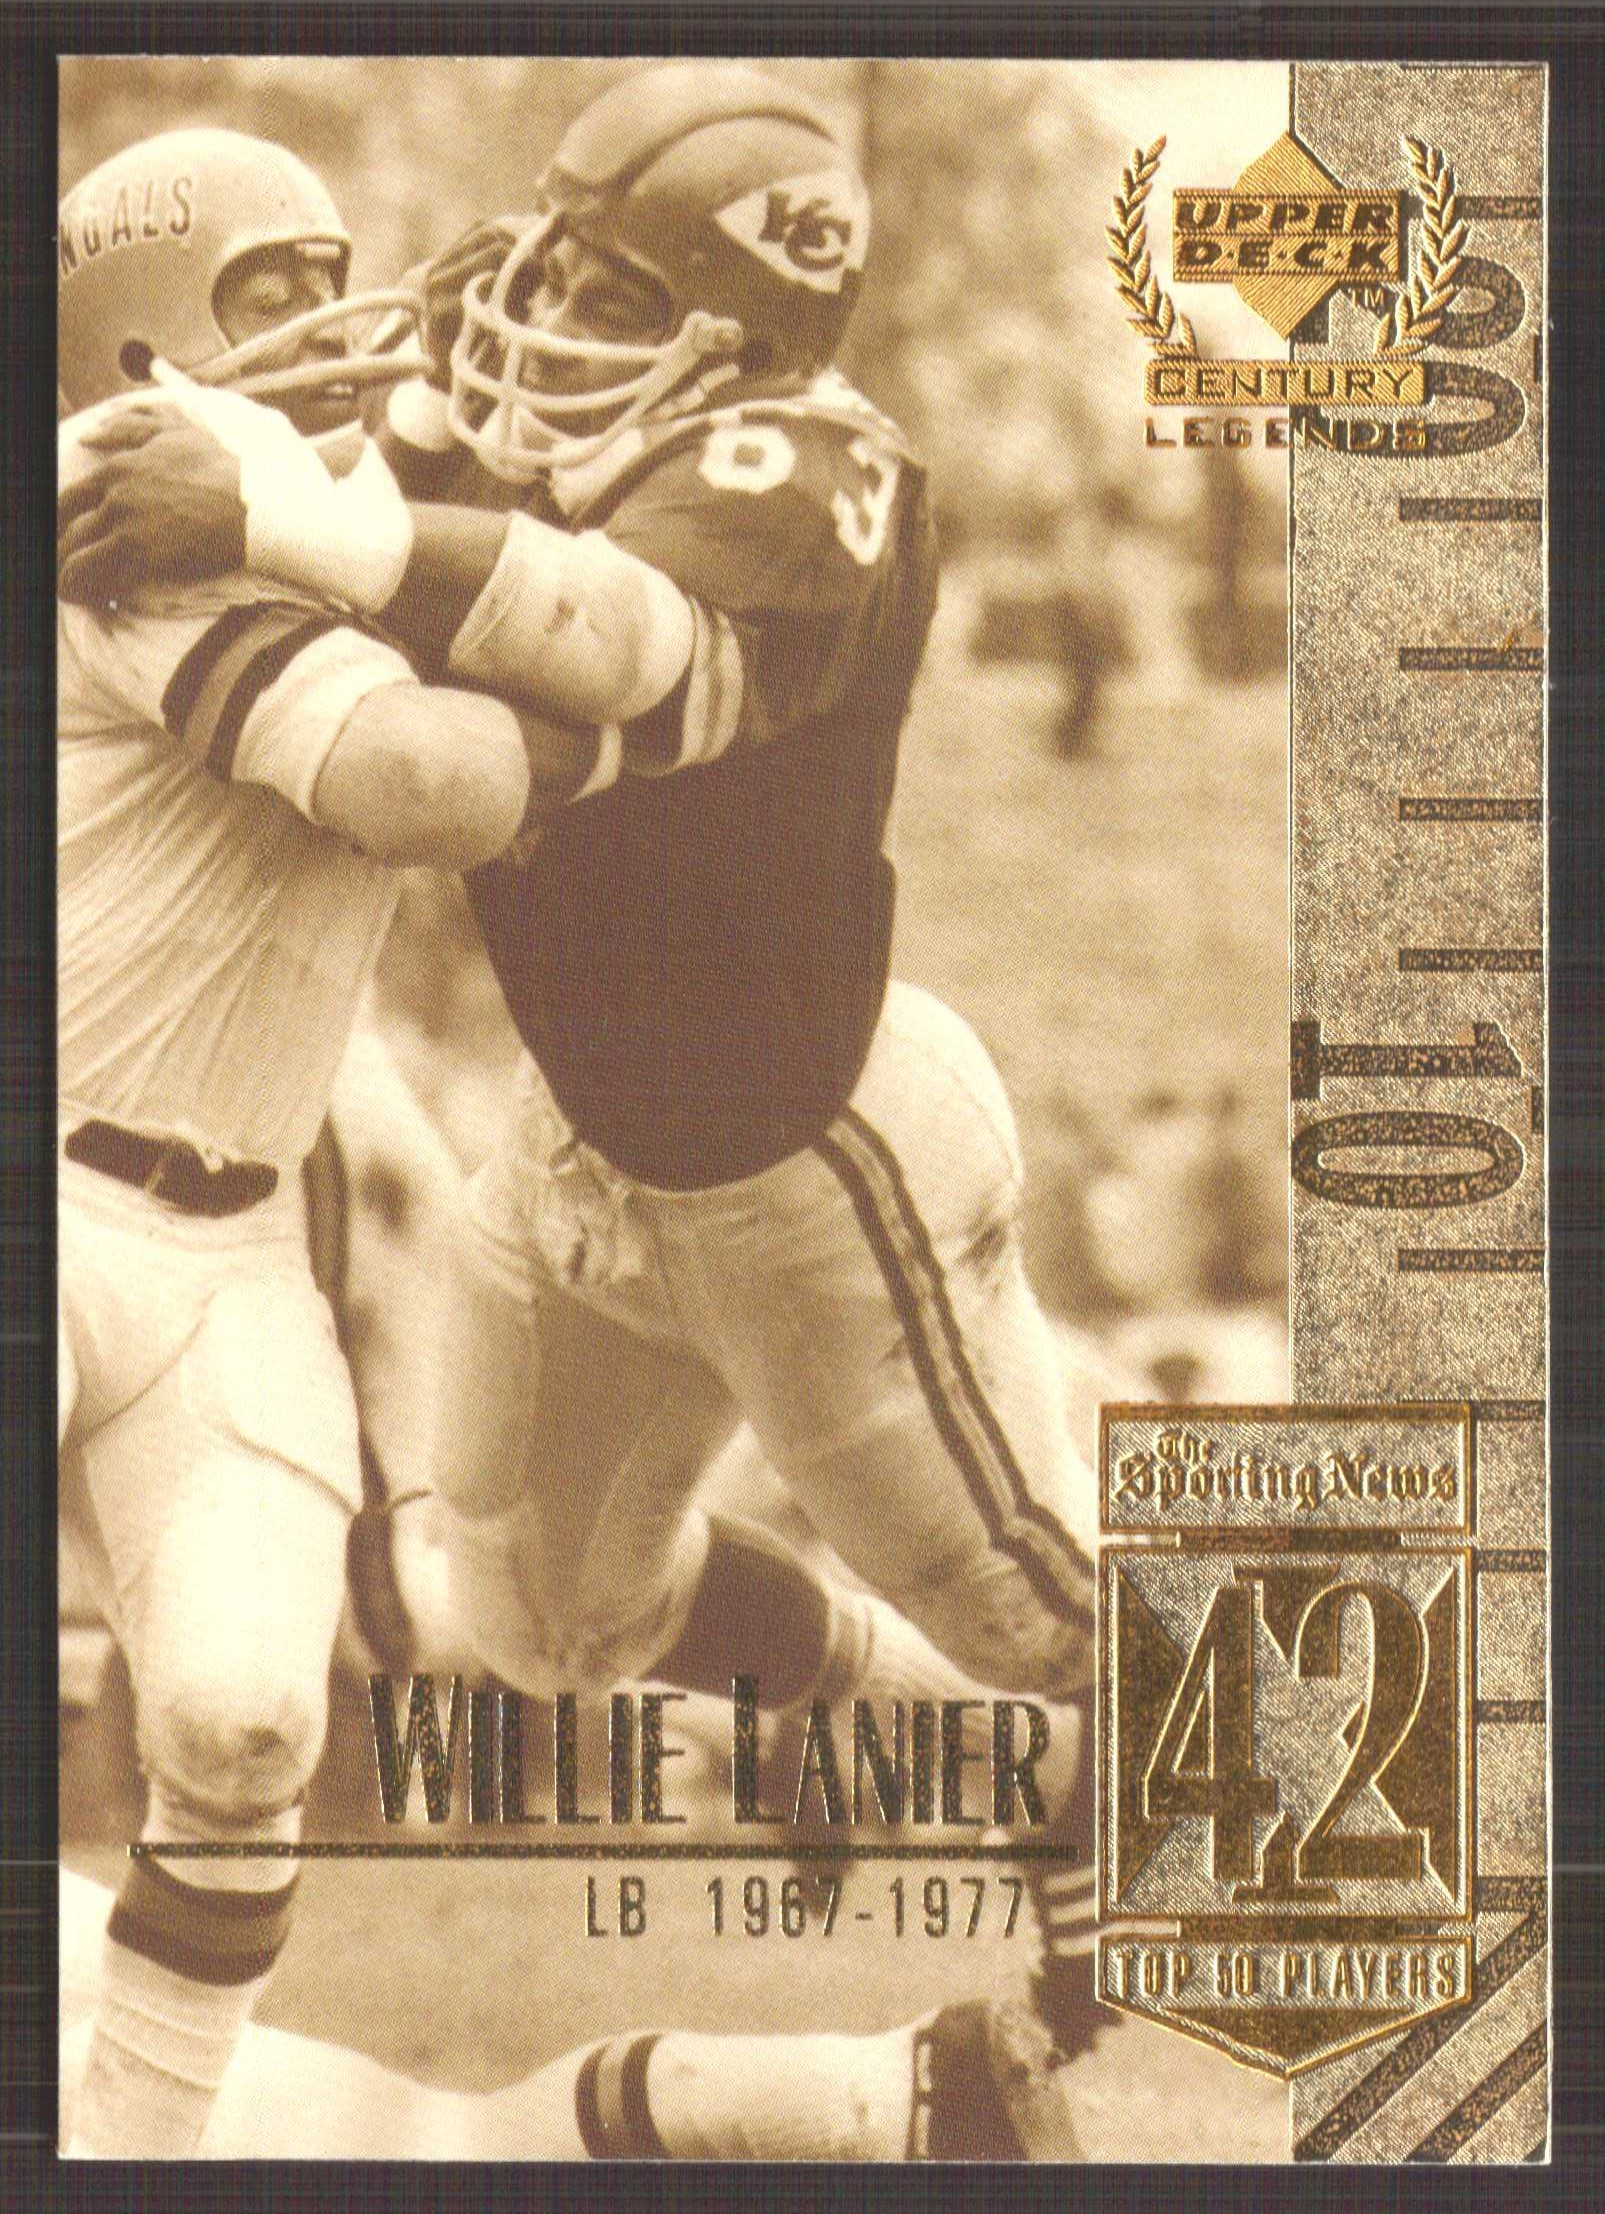 1999 Upper Deck Century Legends #42 Willie Lanier